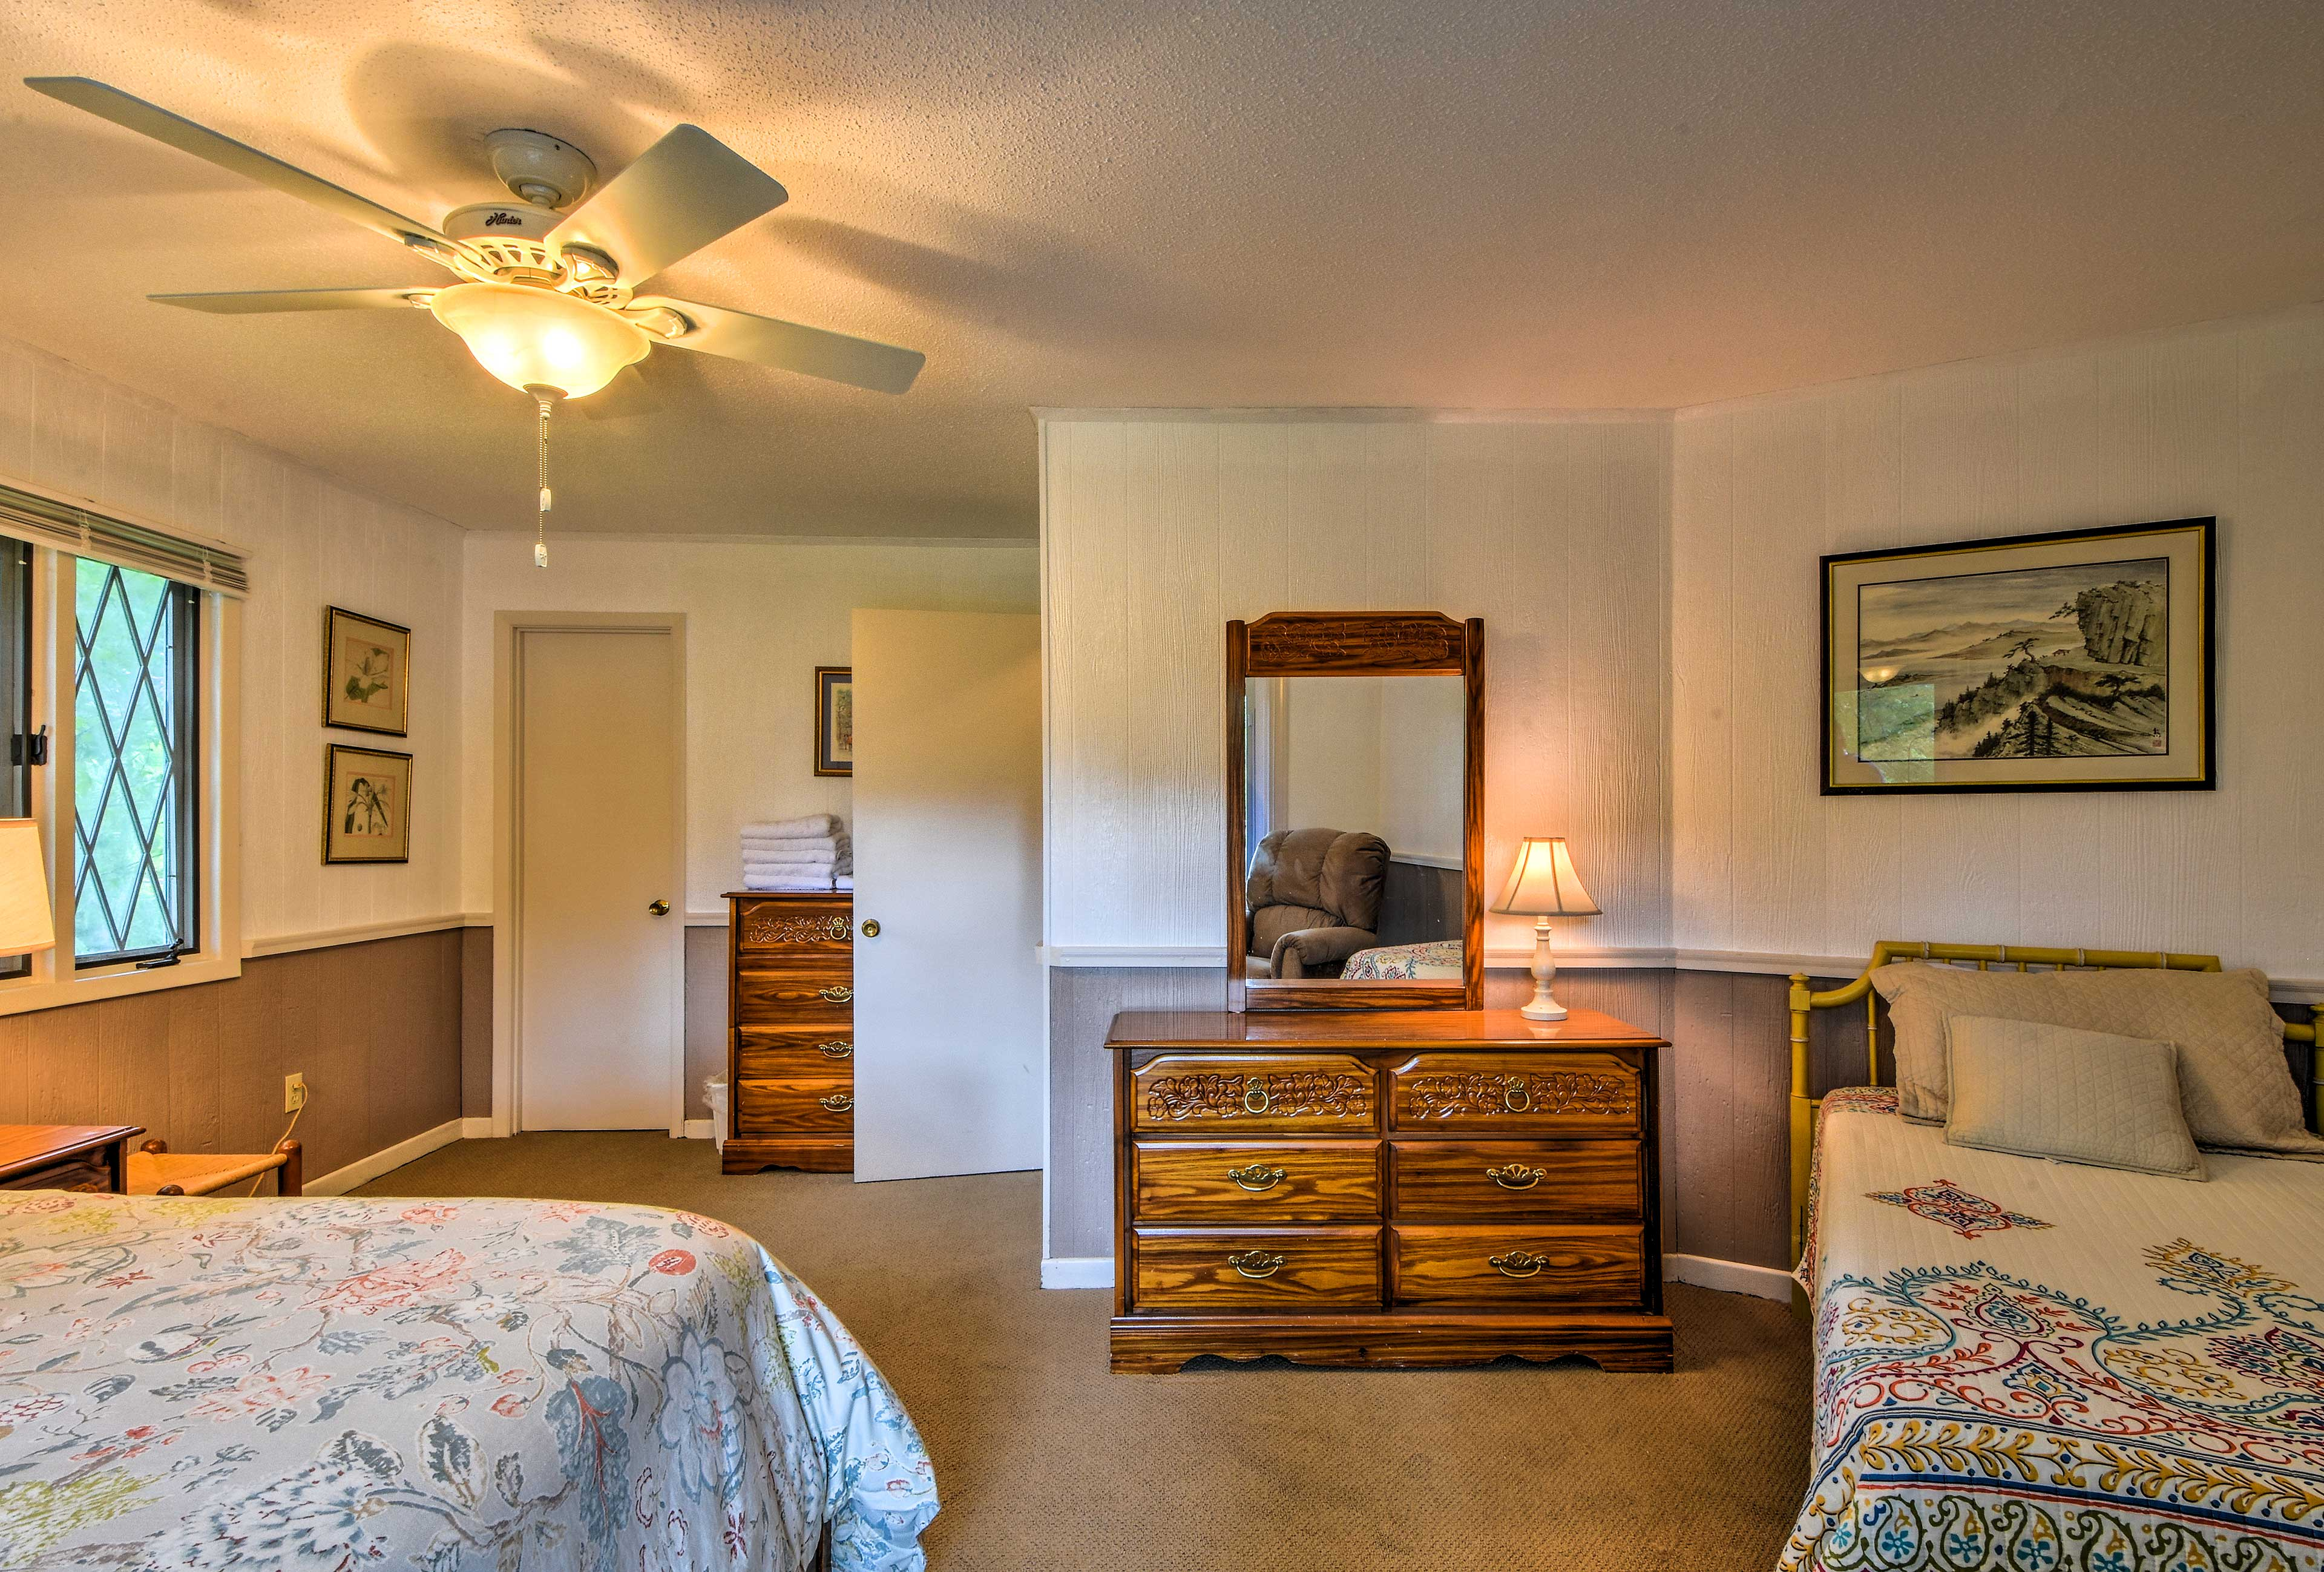 The third bedroom includes a queen bed and a twin bed.